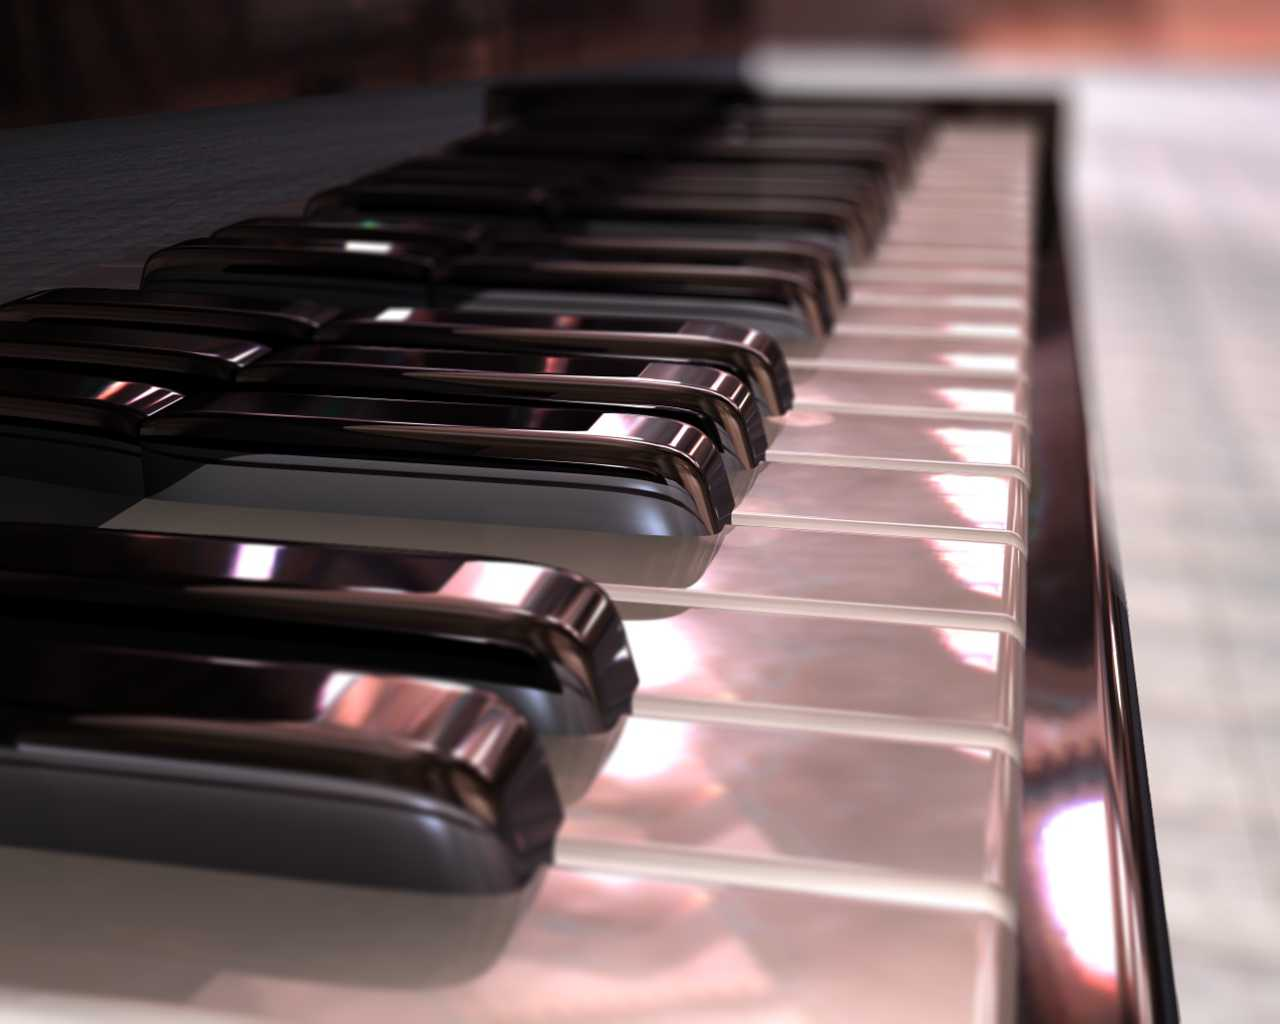 68 Piano Wallpapers | Piano Backgrounds